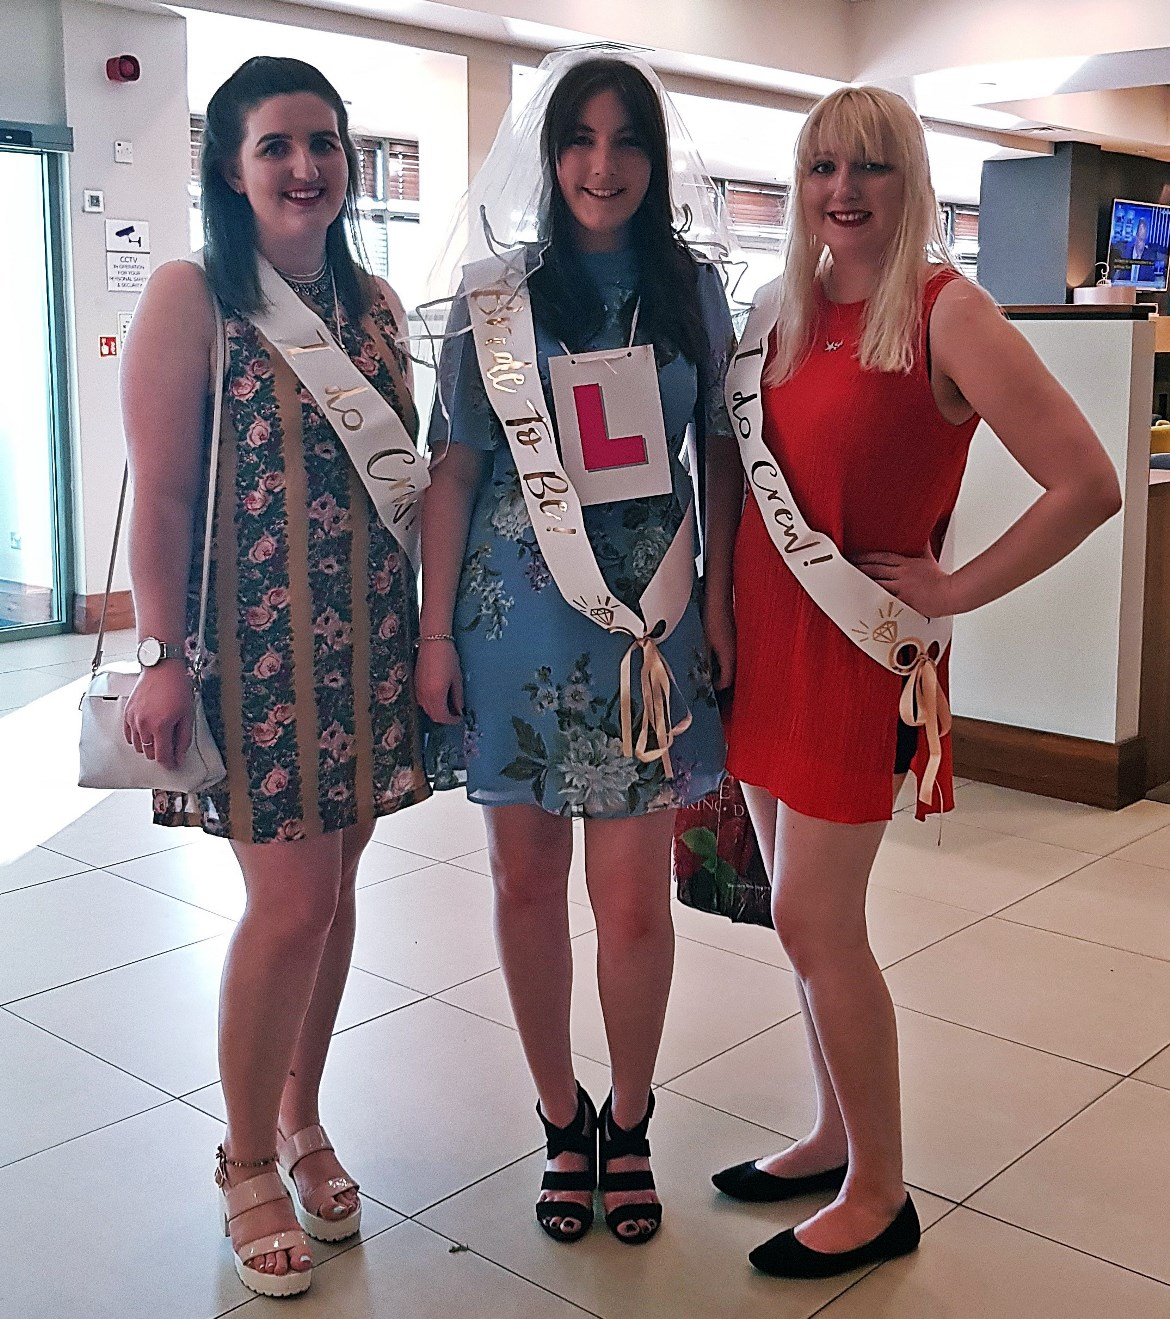 Ready to go on Keeleigh's hen do - How to throw a kickass hen party by BeckyBecky Blogs